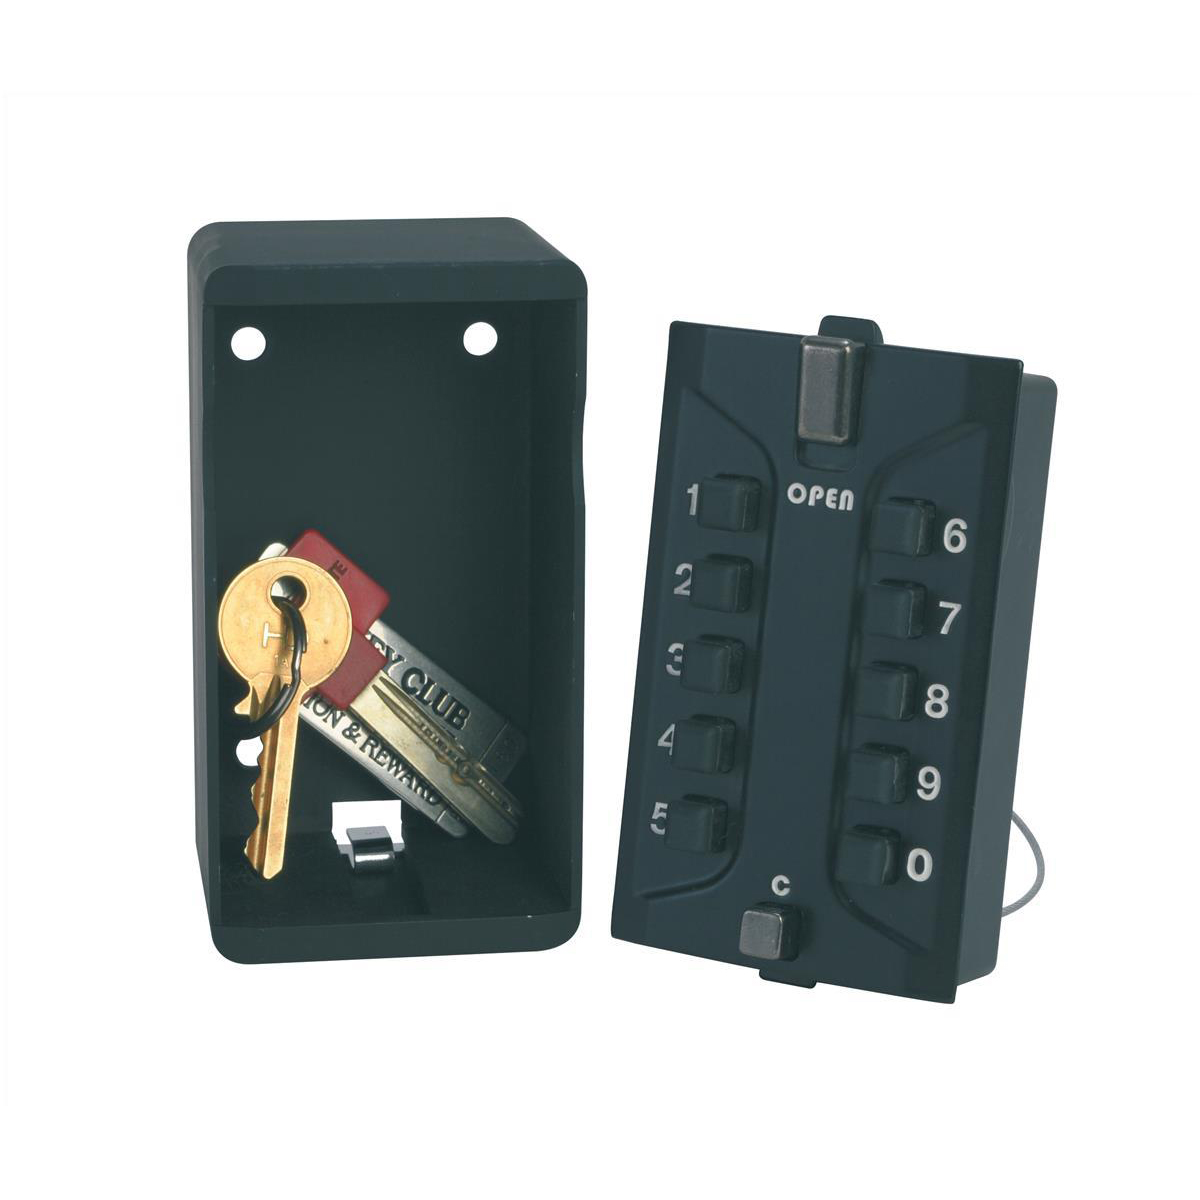 Phoenix Key Store Safe Combination Lock W62xD58xH115mm Ref KS0003C